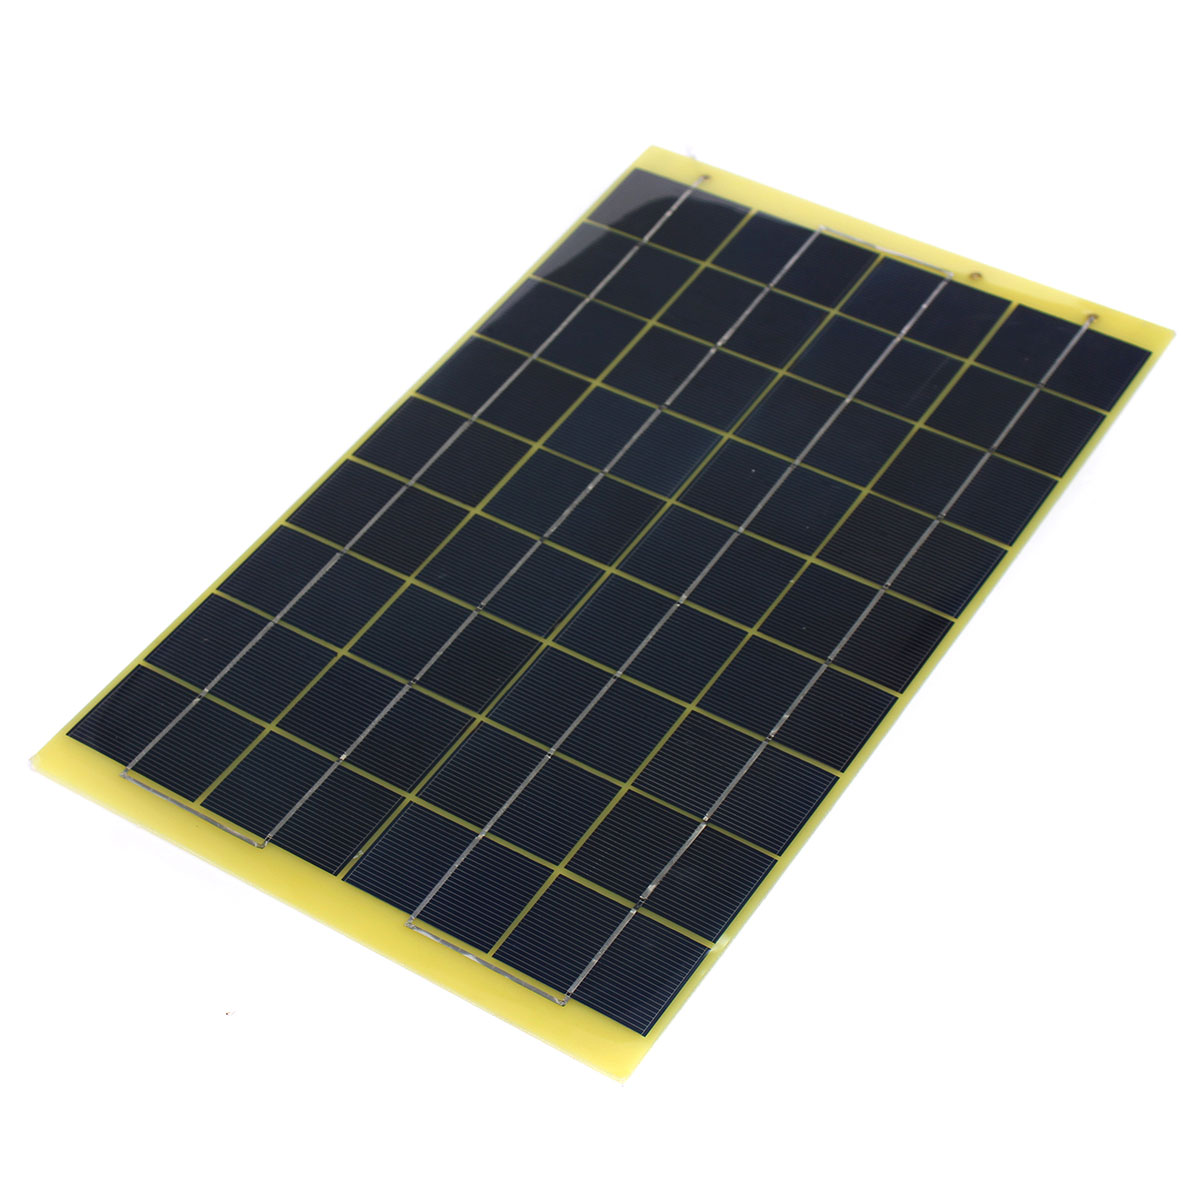 1 2 Resin Panel : W v epoxy resin poly solar panel with diode for charge